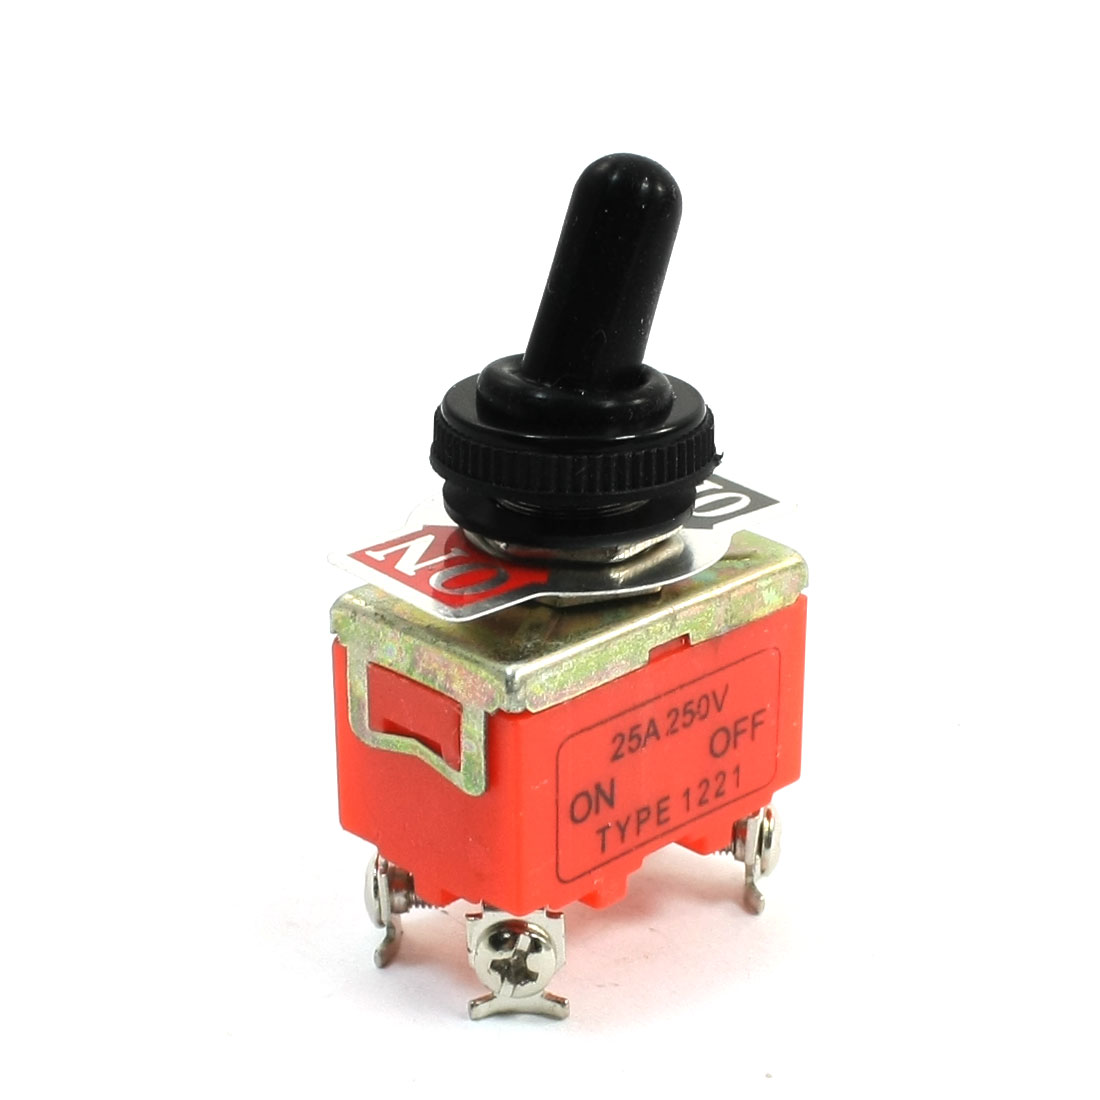 250V 25A Waterproof ON-OFF 4 Screw Terminal DPST Locking Toggle Switch